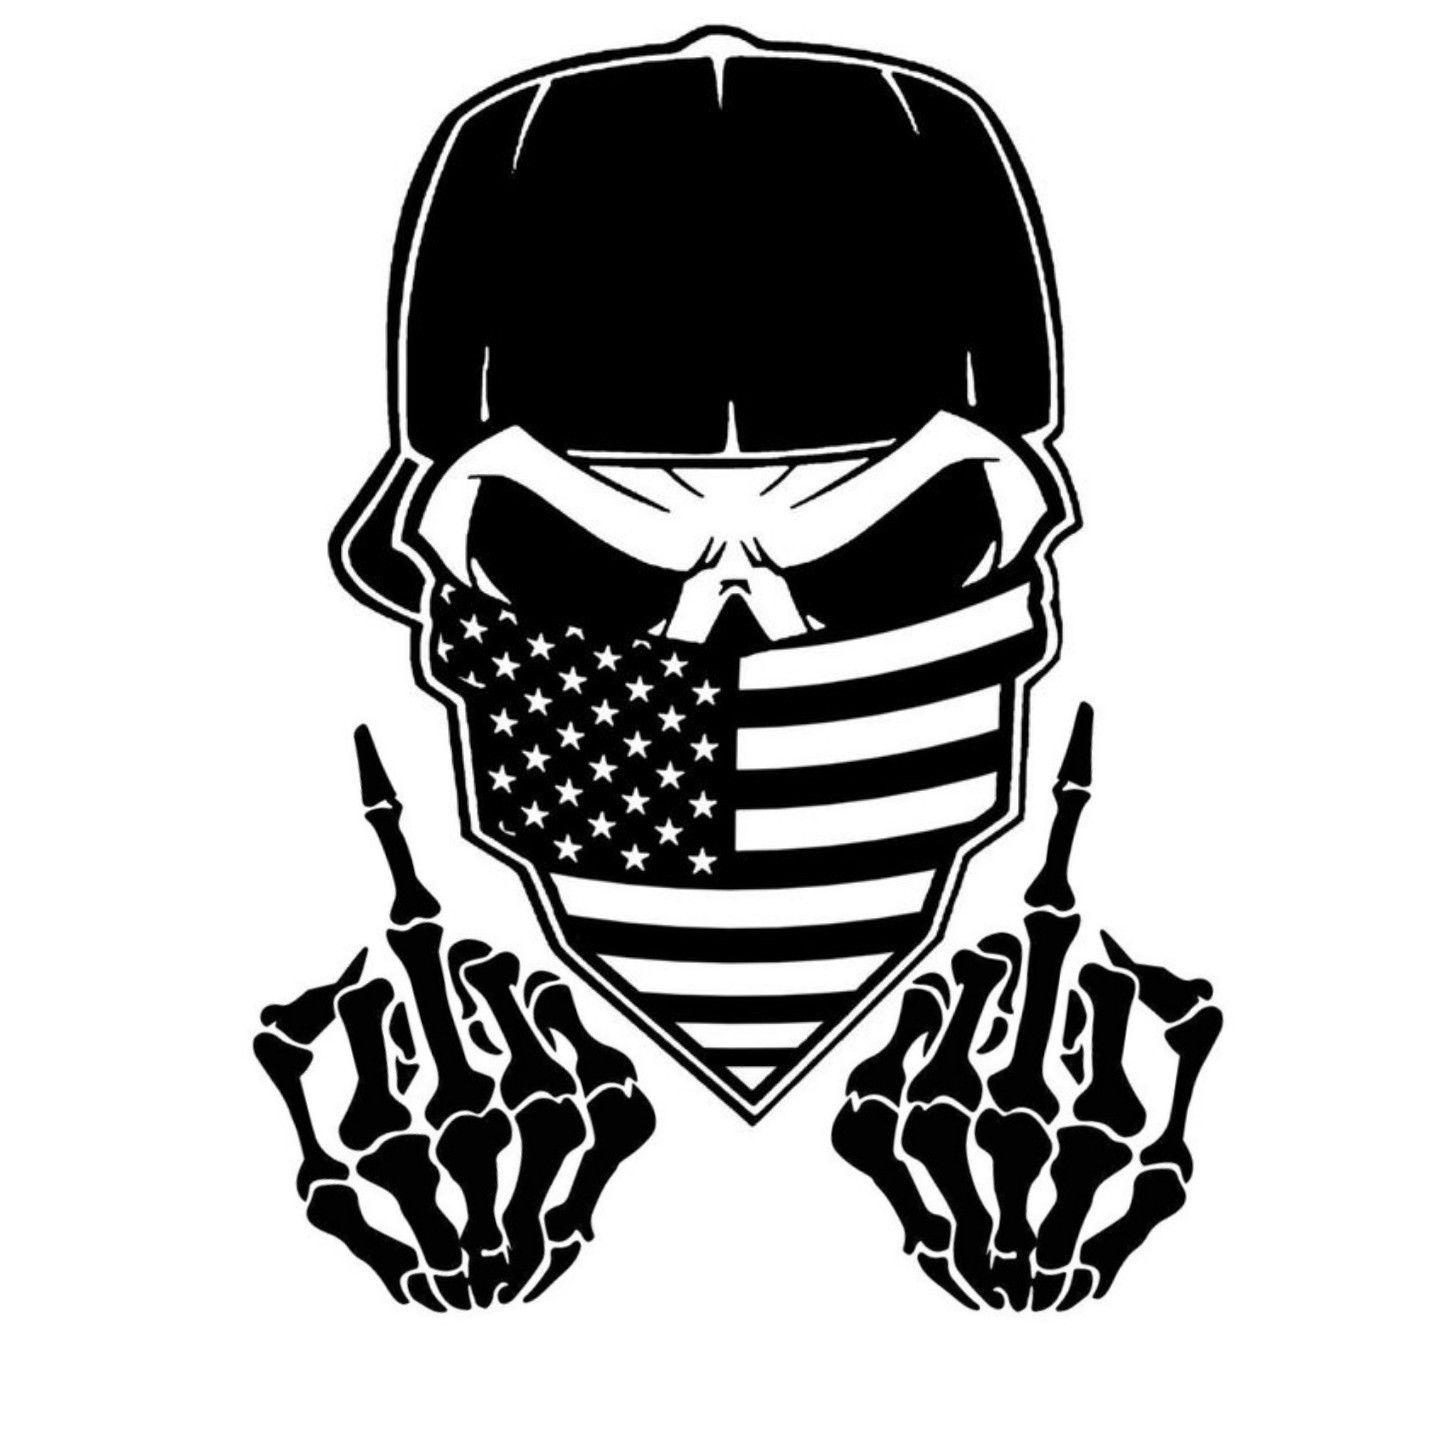 2019 car window decal truck outdoor sticker cool gangster skull wicked flag meric vinyl car wrap from xymy787 2 92 dhgate com